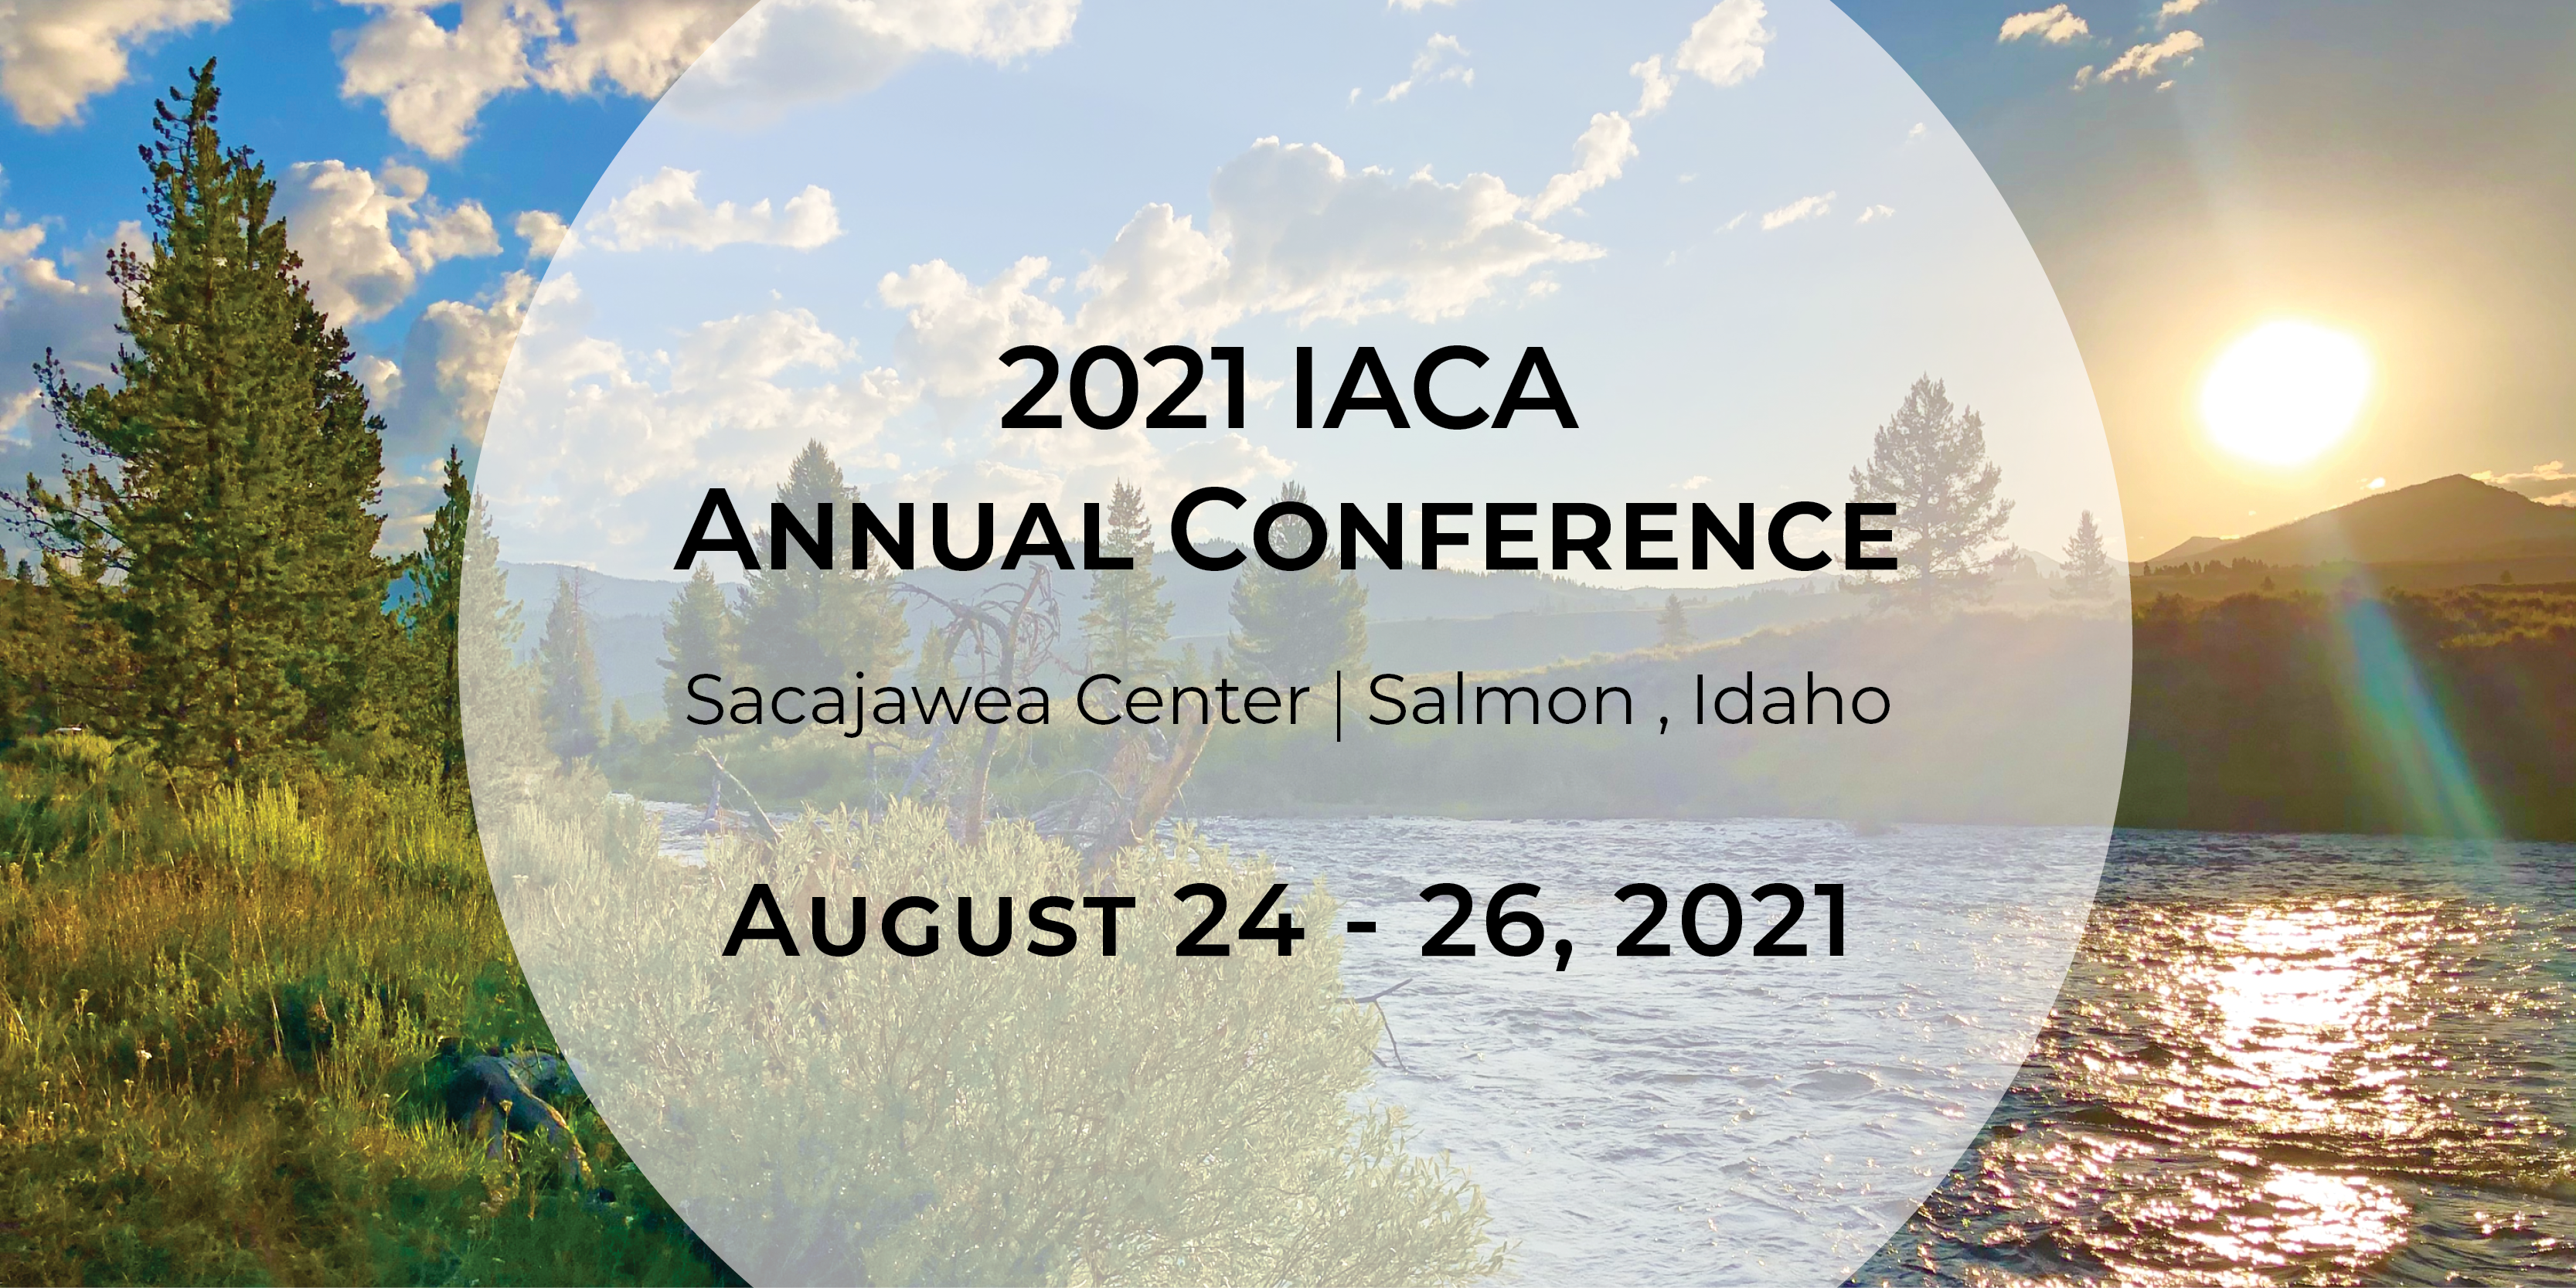 2021 IACA Annual Conference